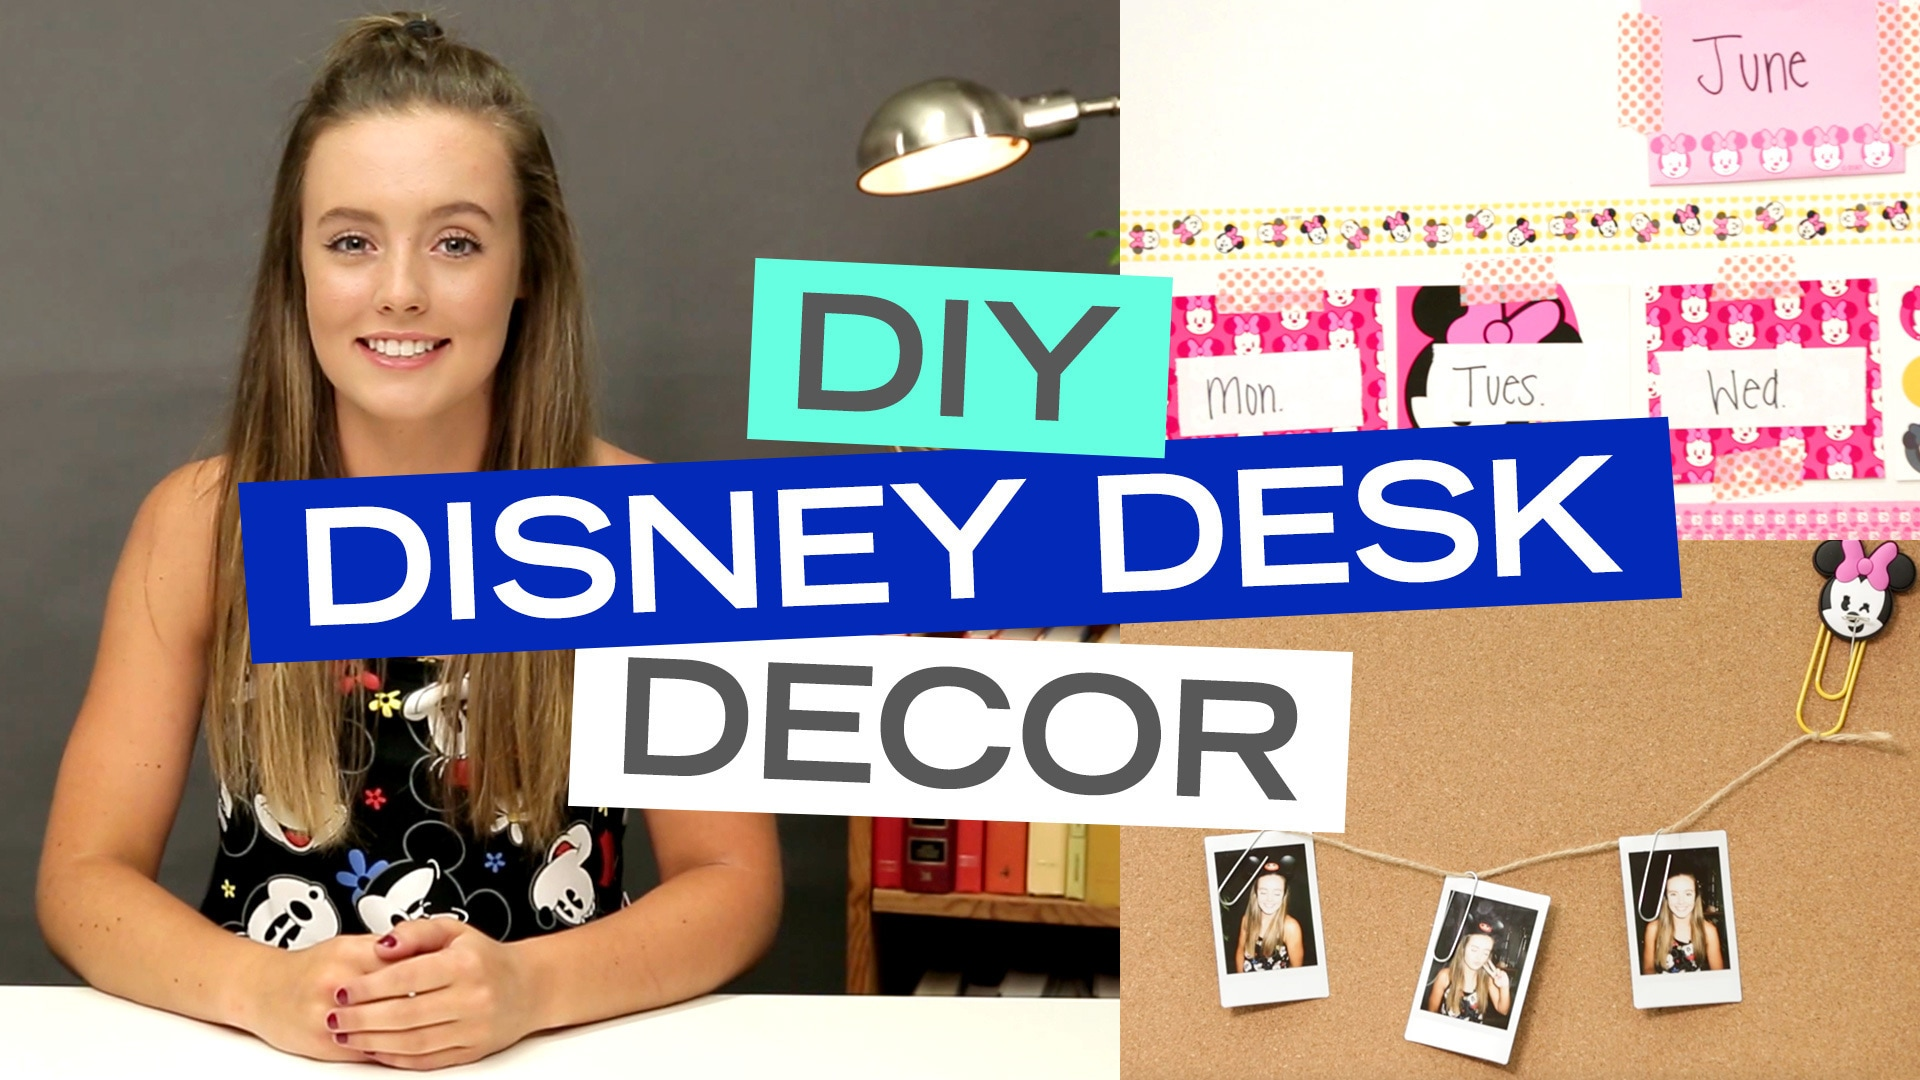 Disney Style: DIY Disney Desk Decor Ideas with Breezylynn